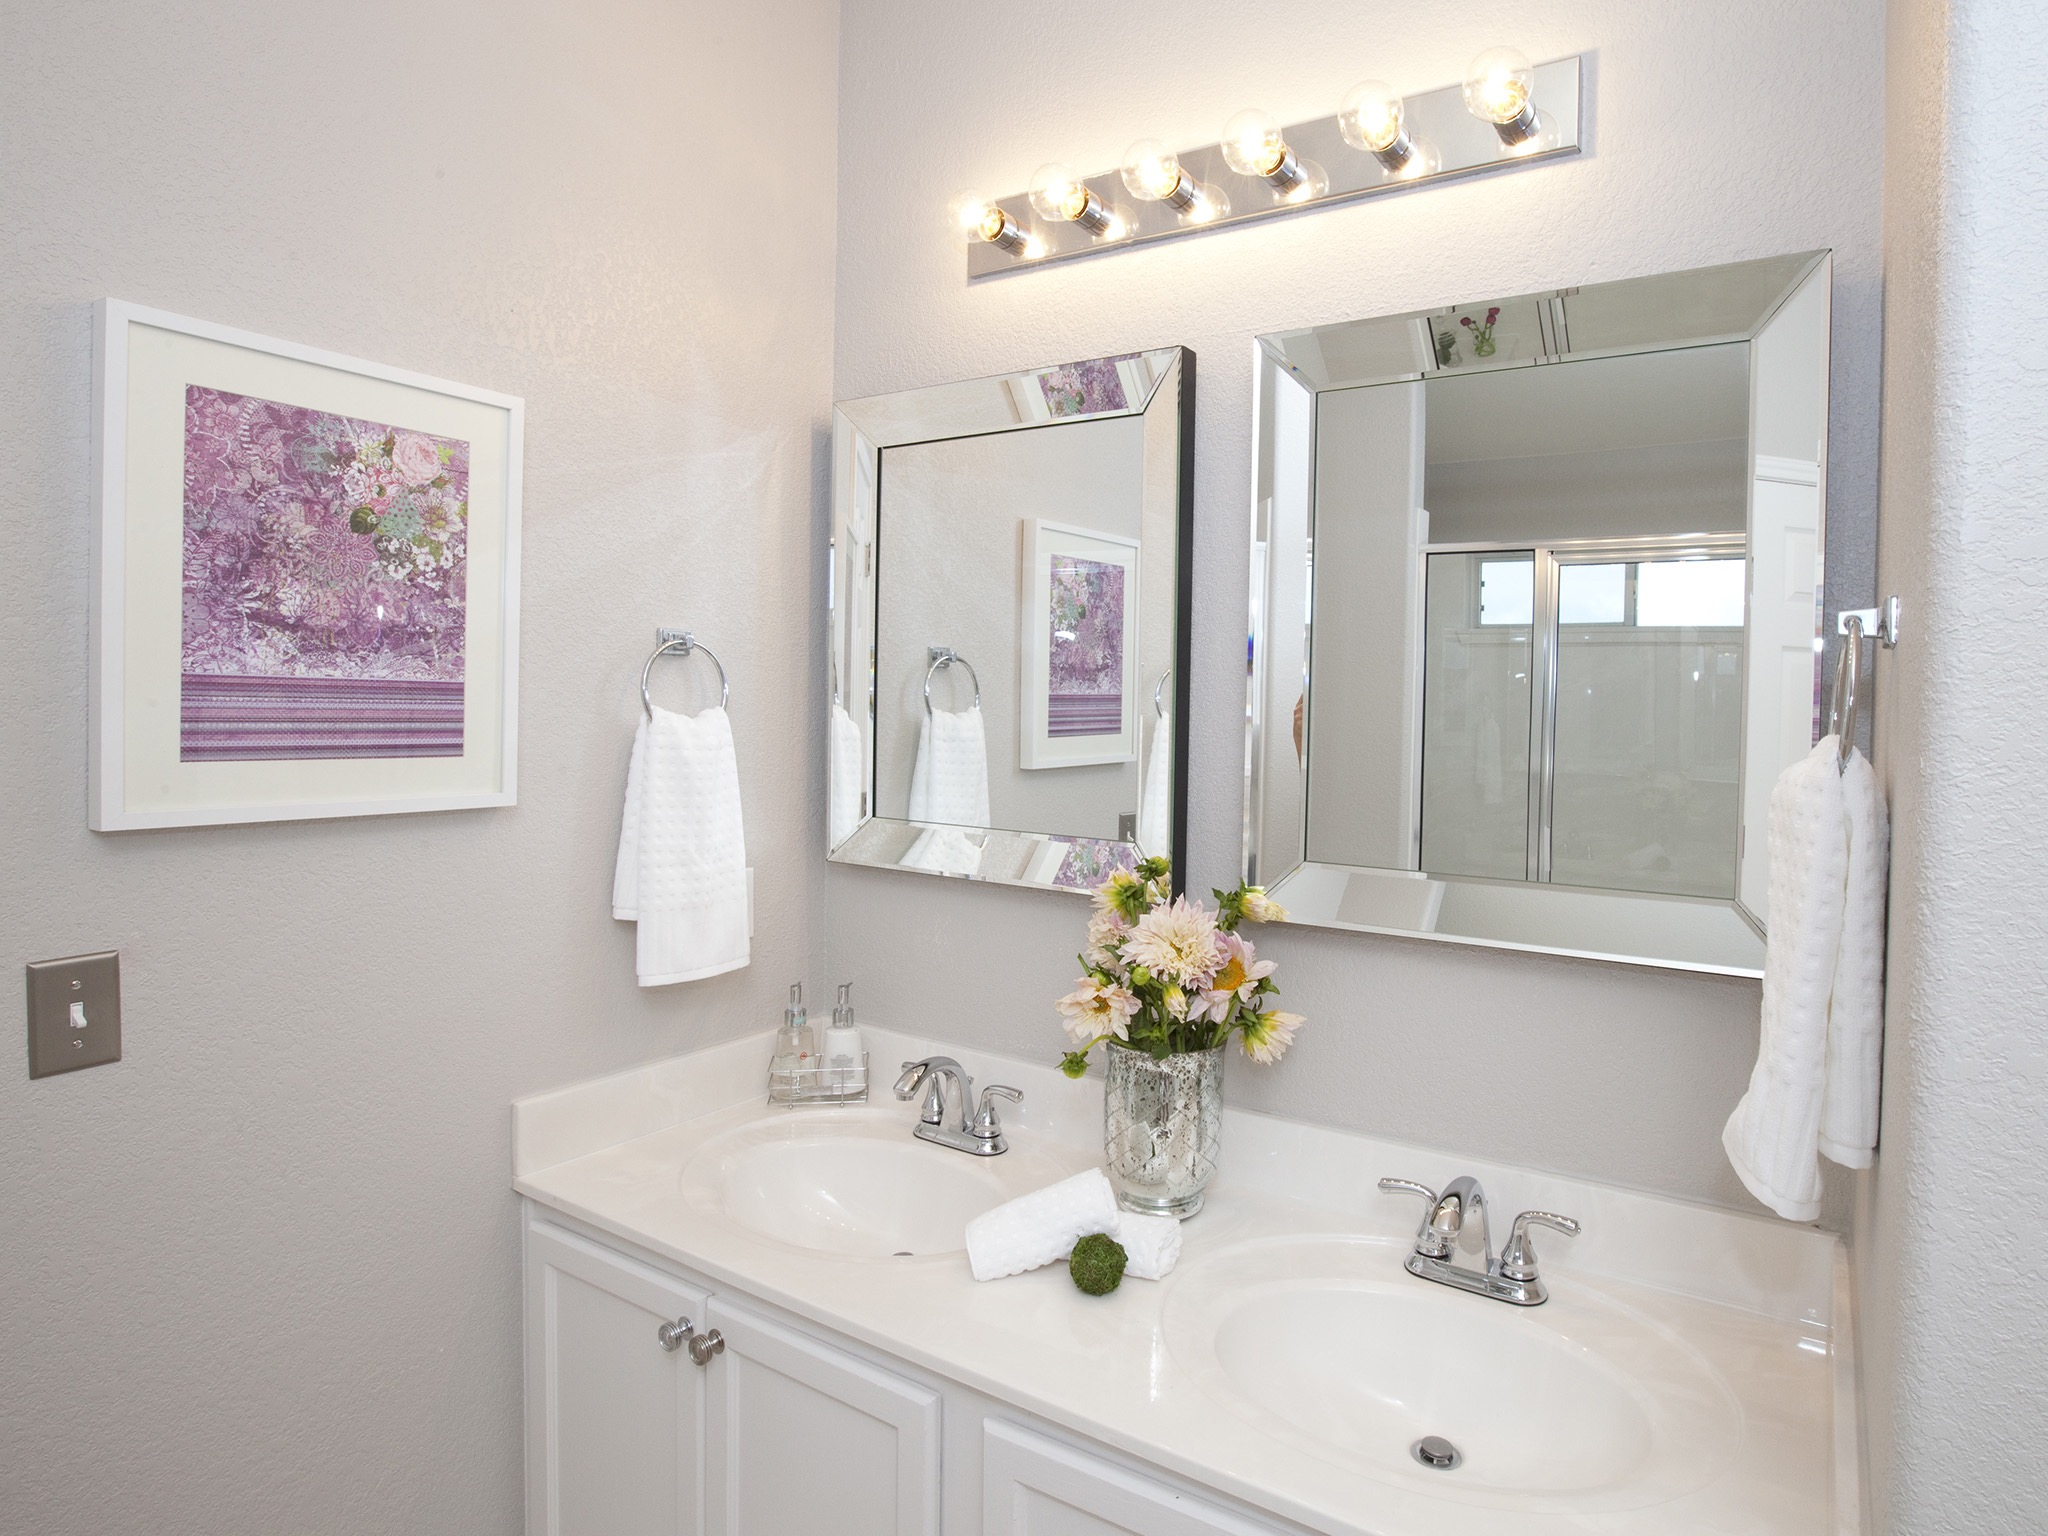 Modern Bathroom Accessories With Chrome Light Fixture And Faucets (Image 8 of 14)